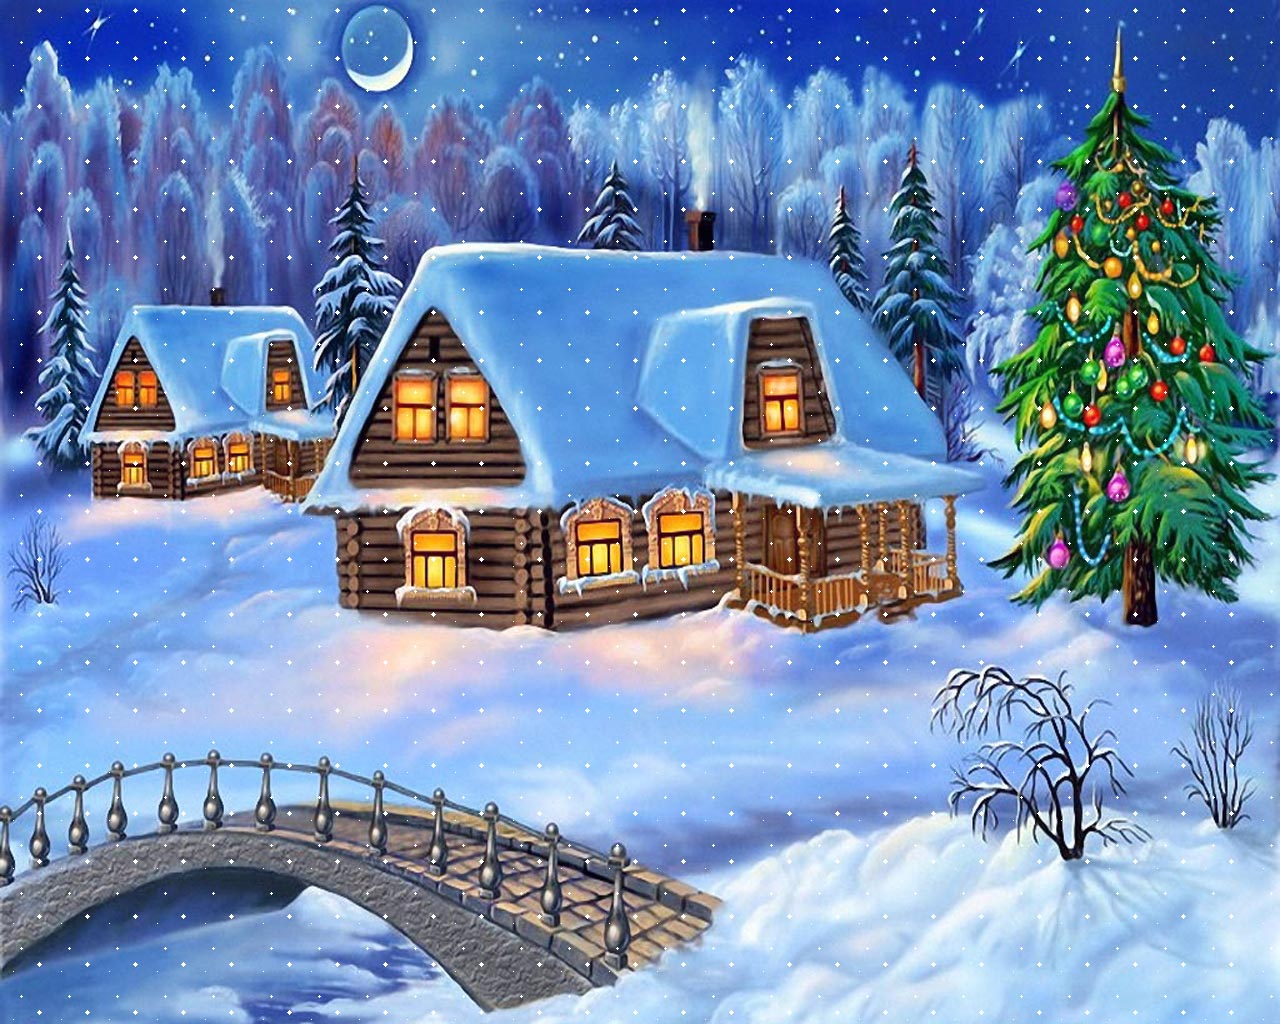 1280x1024 home christmas desktop pc and mac wallpaper for Home wallpaper videos